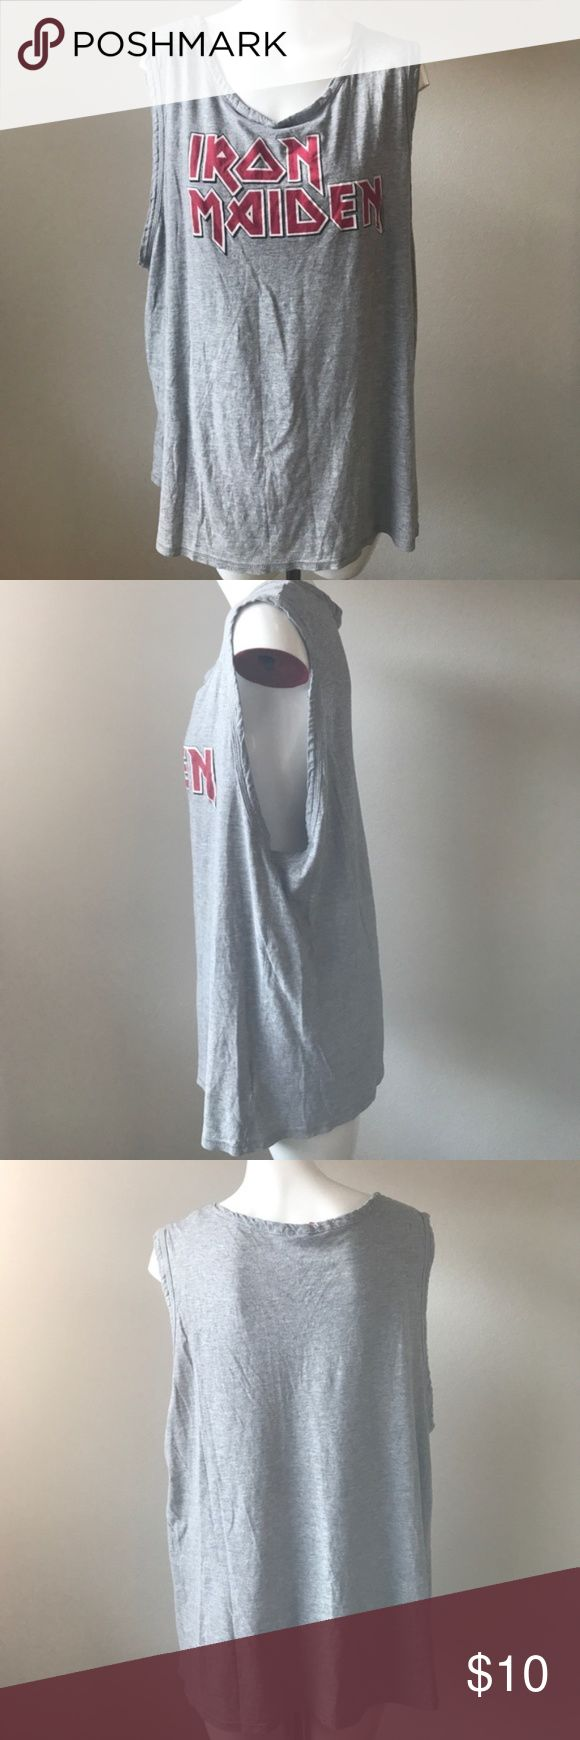 Iron Maiden muscle shirt You will look like a real badass rocker in this. Soft jersey material. Oversized style. Hardly worn. Super heavy metal rocker vibes! H&M Tops Muscle Tees